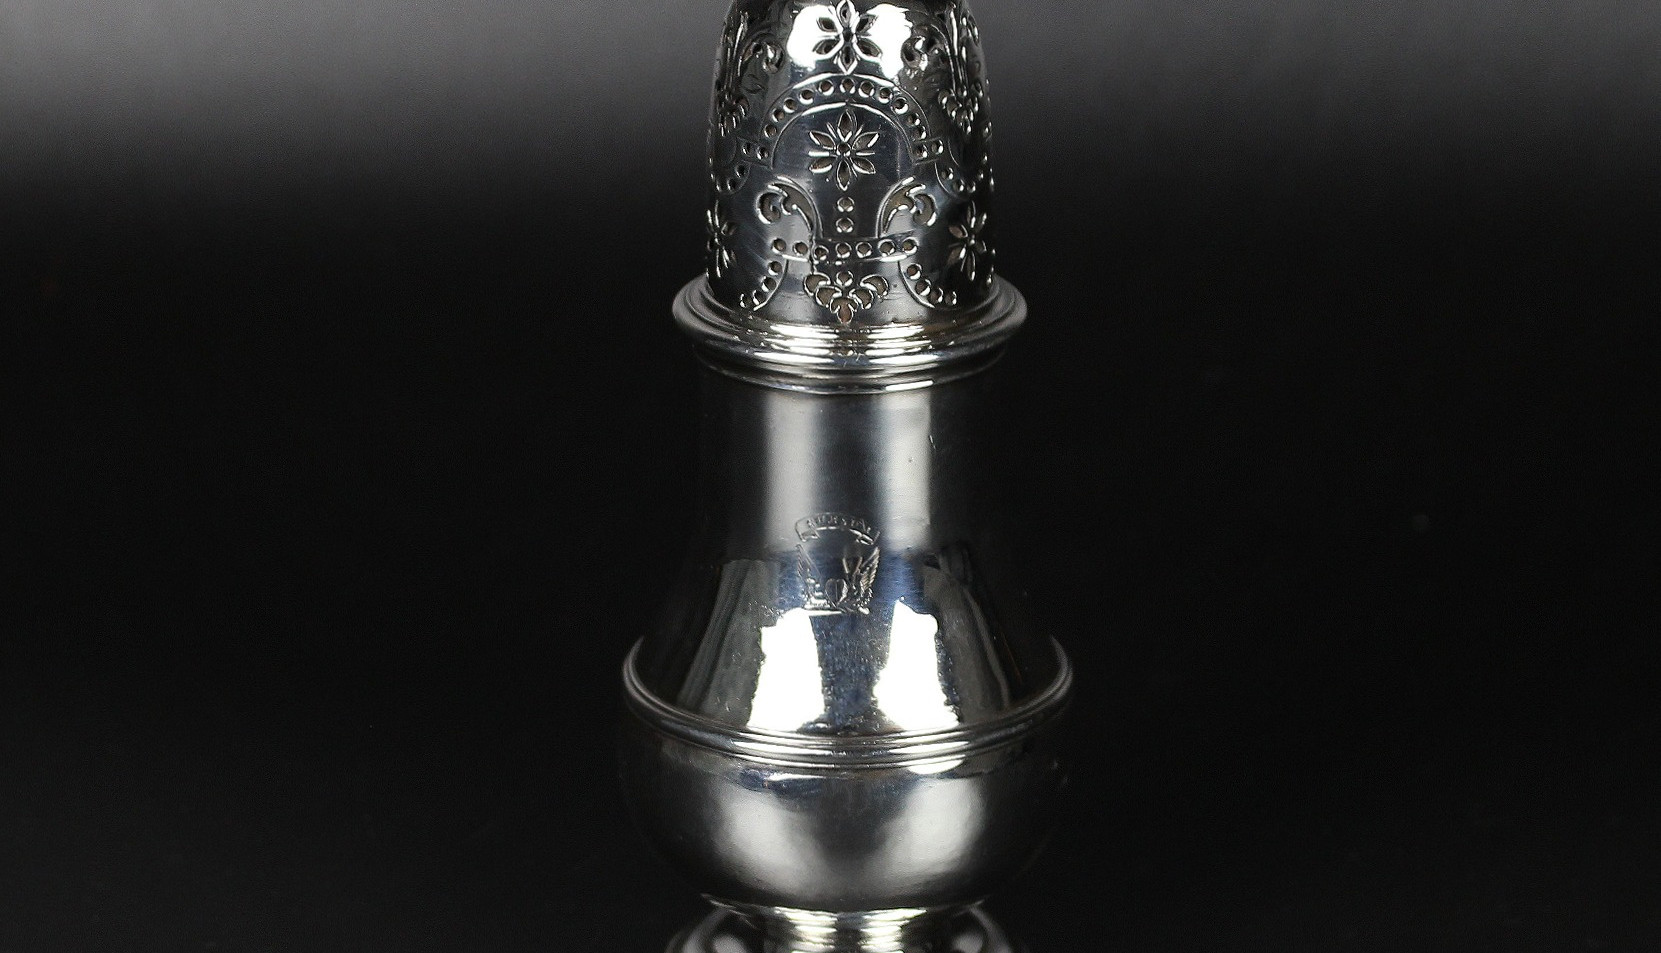 George I Pepper caster, 1717 by Thomas Banford. 5 ¾ inches  Motto - Sur Sum (upwards) Crest - A heart between wings  Probably Douglas family.  Britannia Standard  5 ½ oz   £ 2,800.00